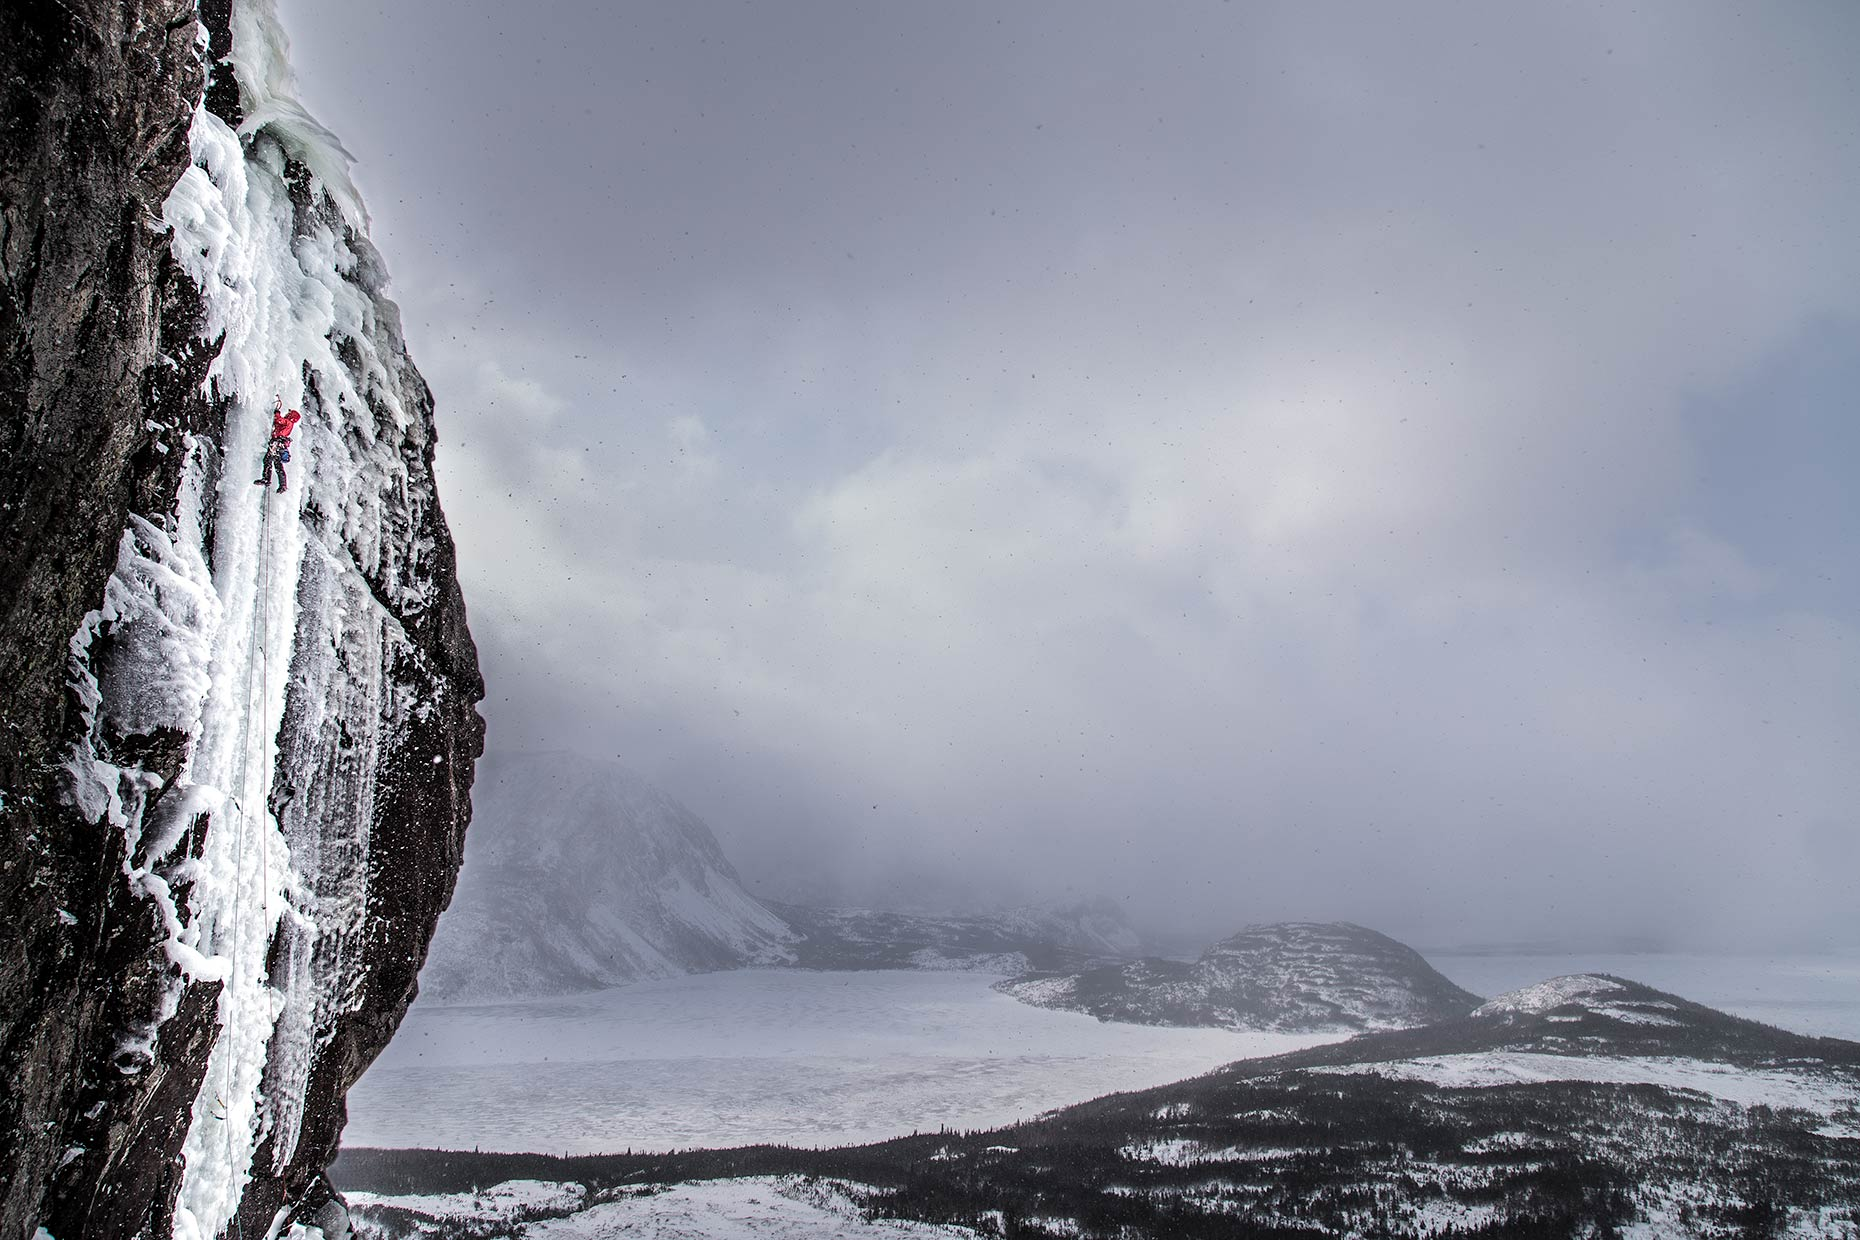 A dramatic panoramic landscape of an ice climber ascending a fjord in Newofoundland